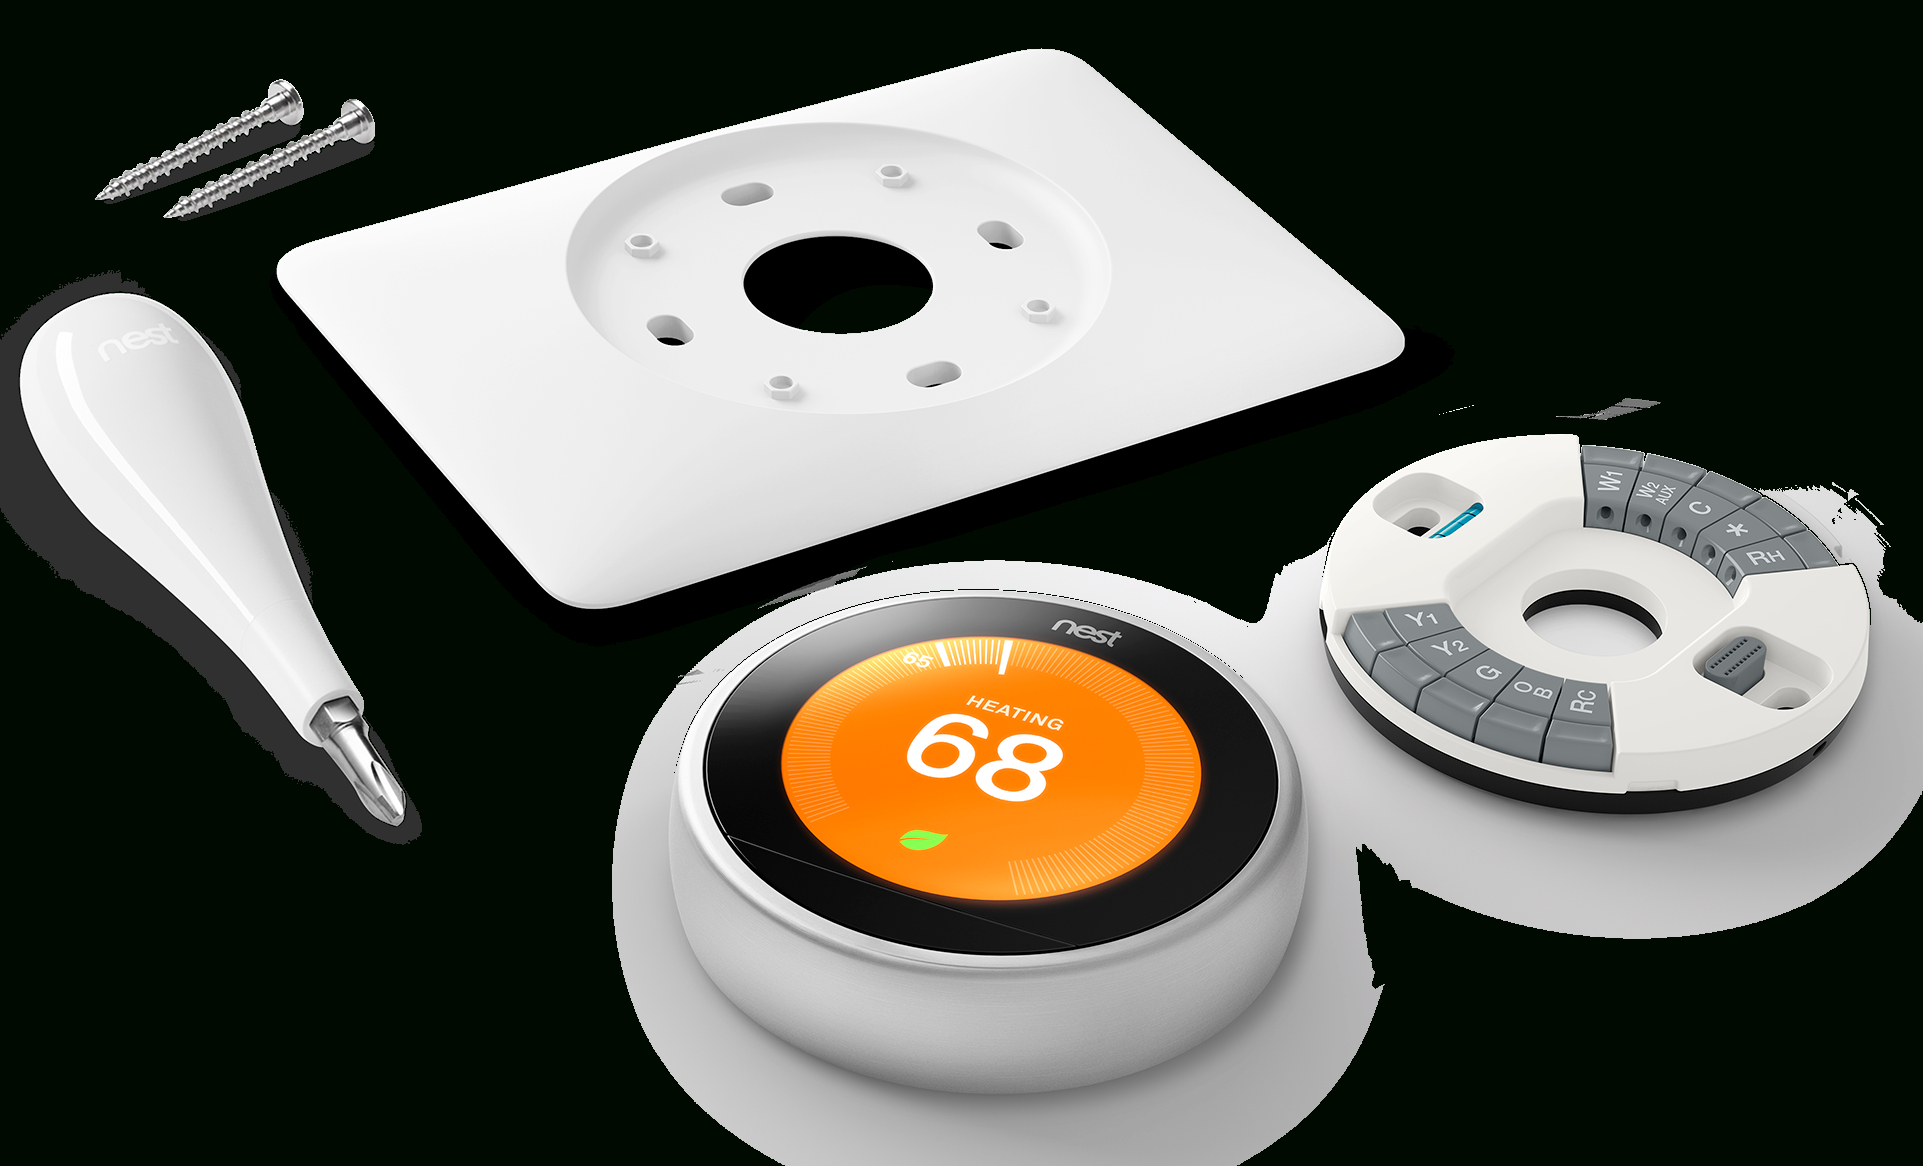 How To Install Your Nest Thermostat - Nest Compatibility Won't Display Wiring Diagram